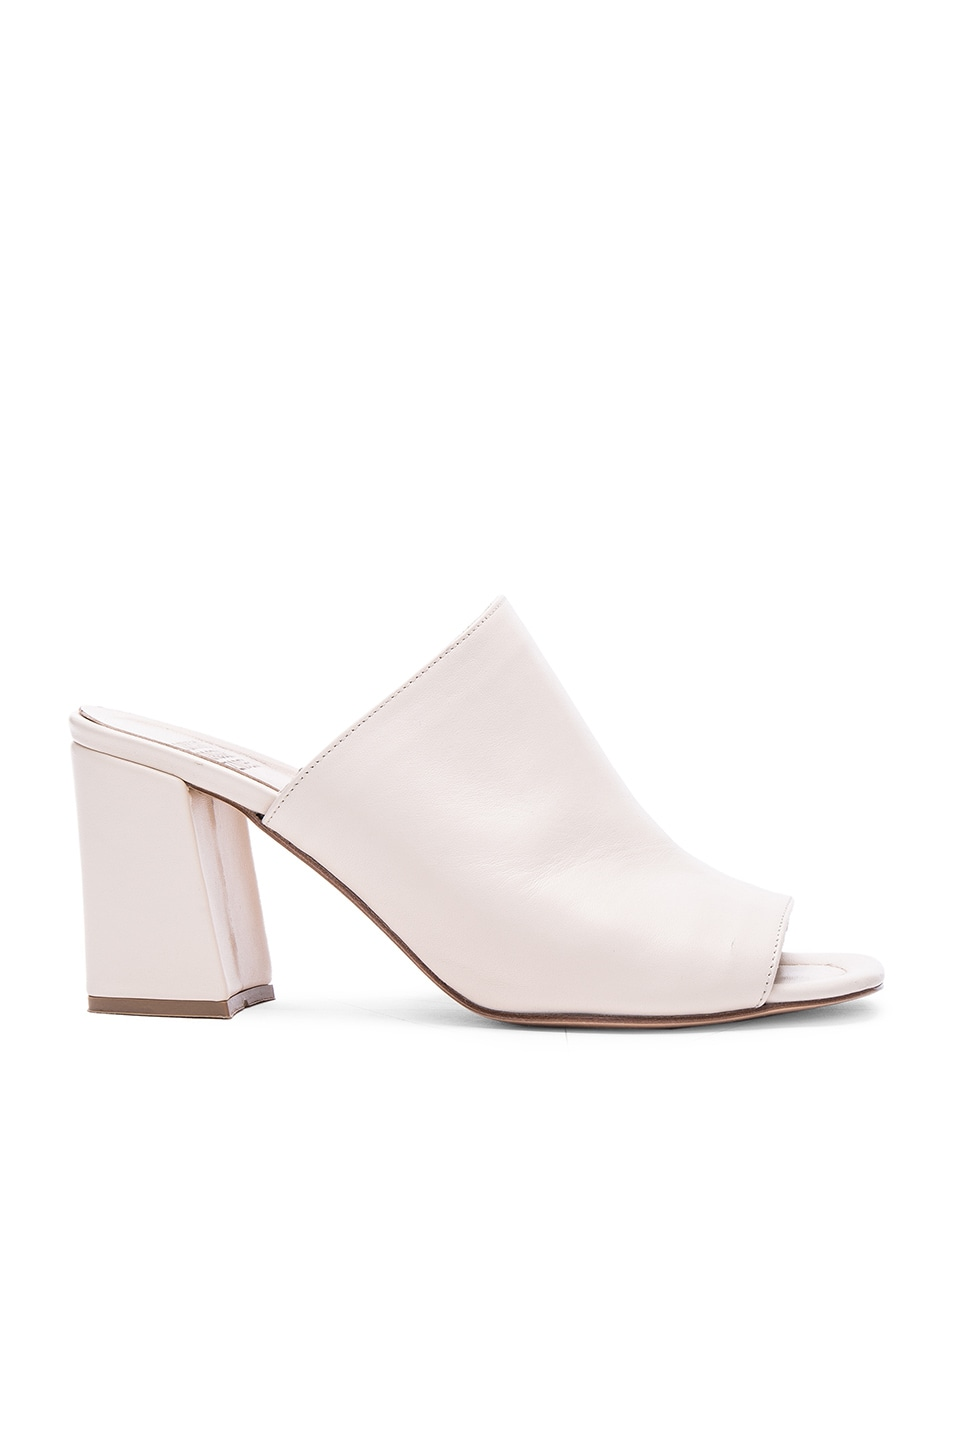 Image 1 of Maryam Nassir Zadeh Penelope Leather Mules in Cream Leather